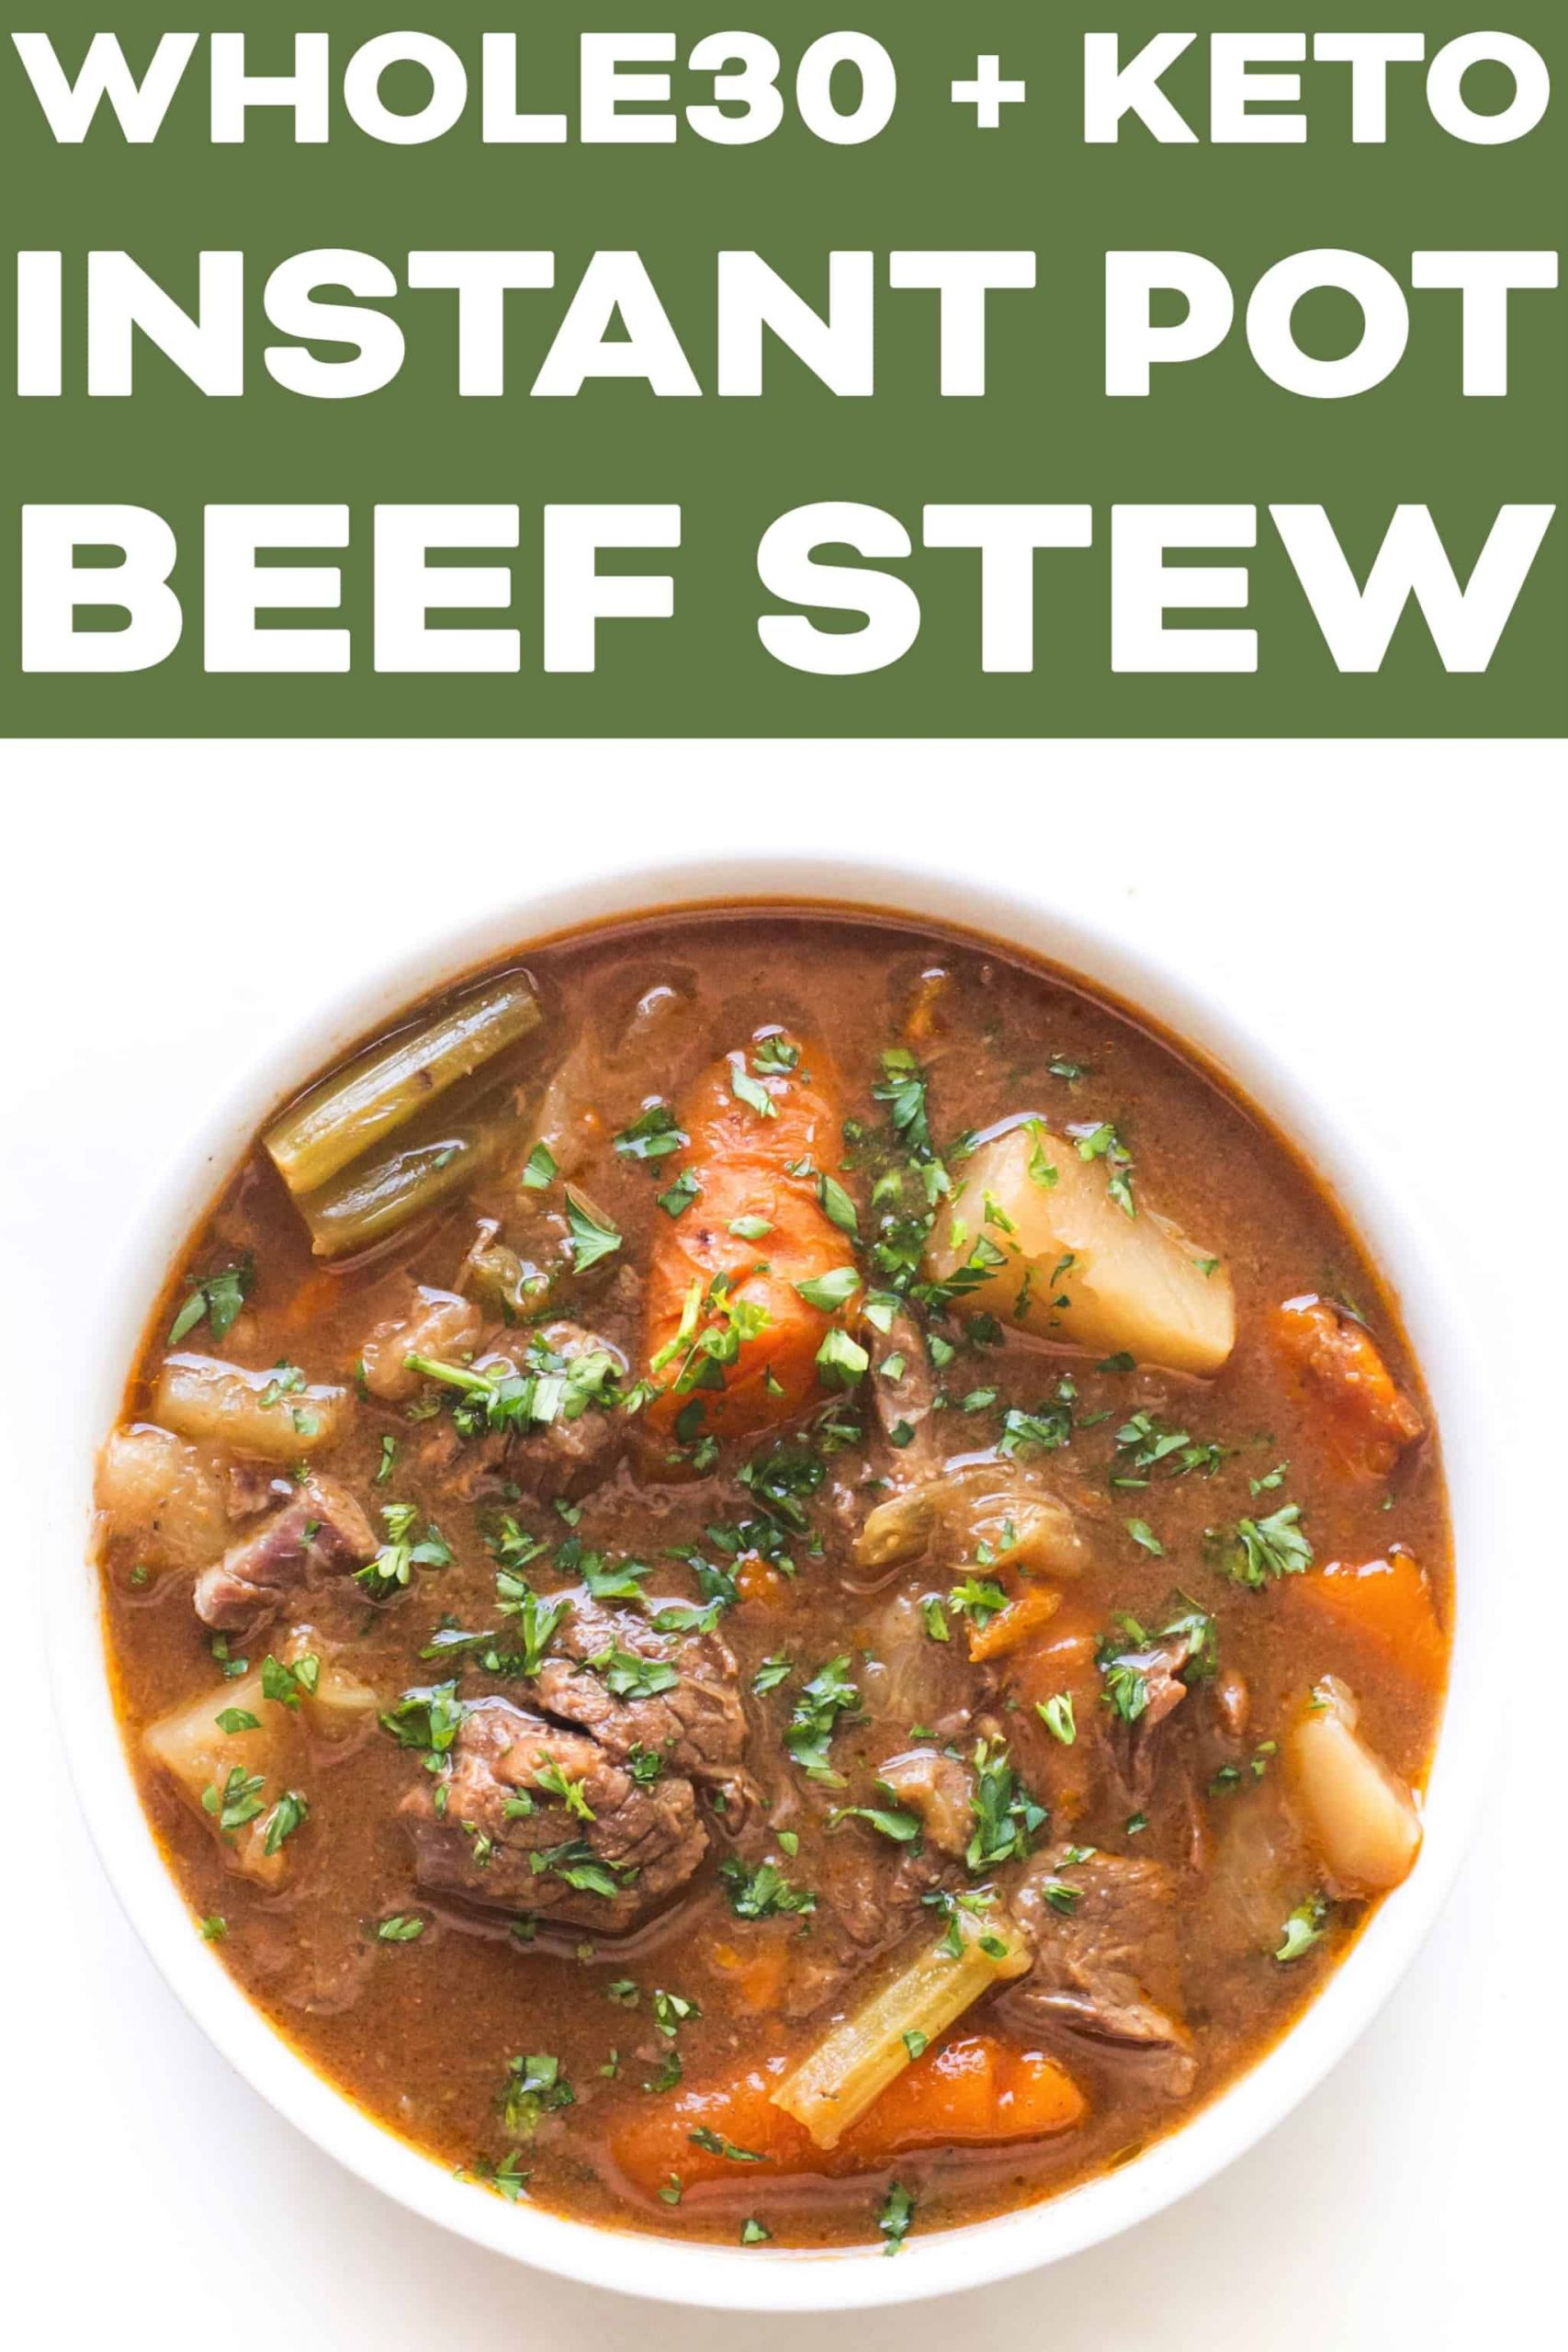 Instant Pot Beef Keto  Whole30 Keto Instant Pot Beef Stew Tastes Lovely